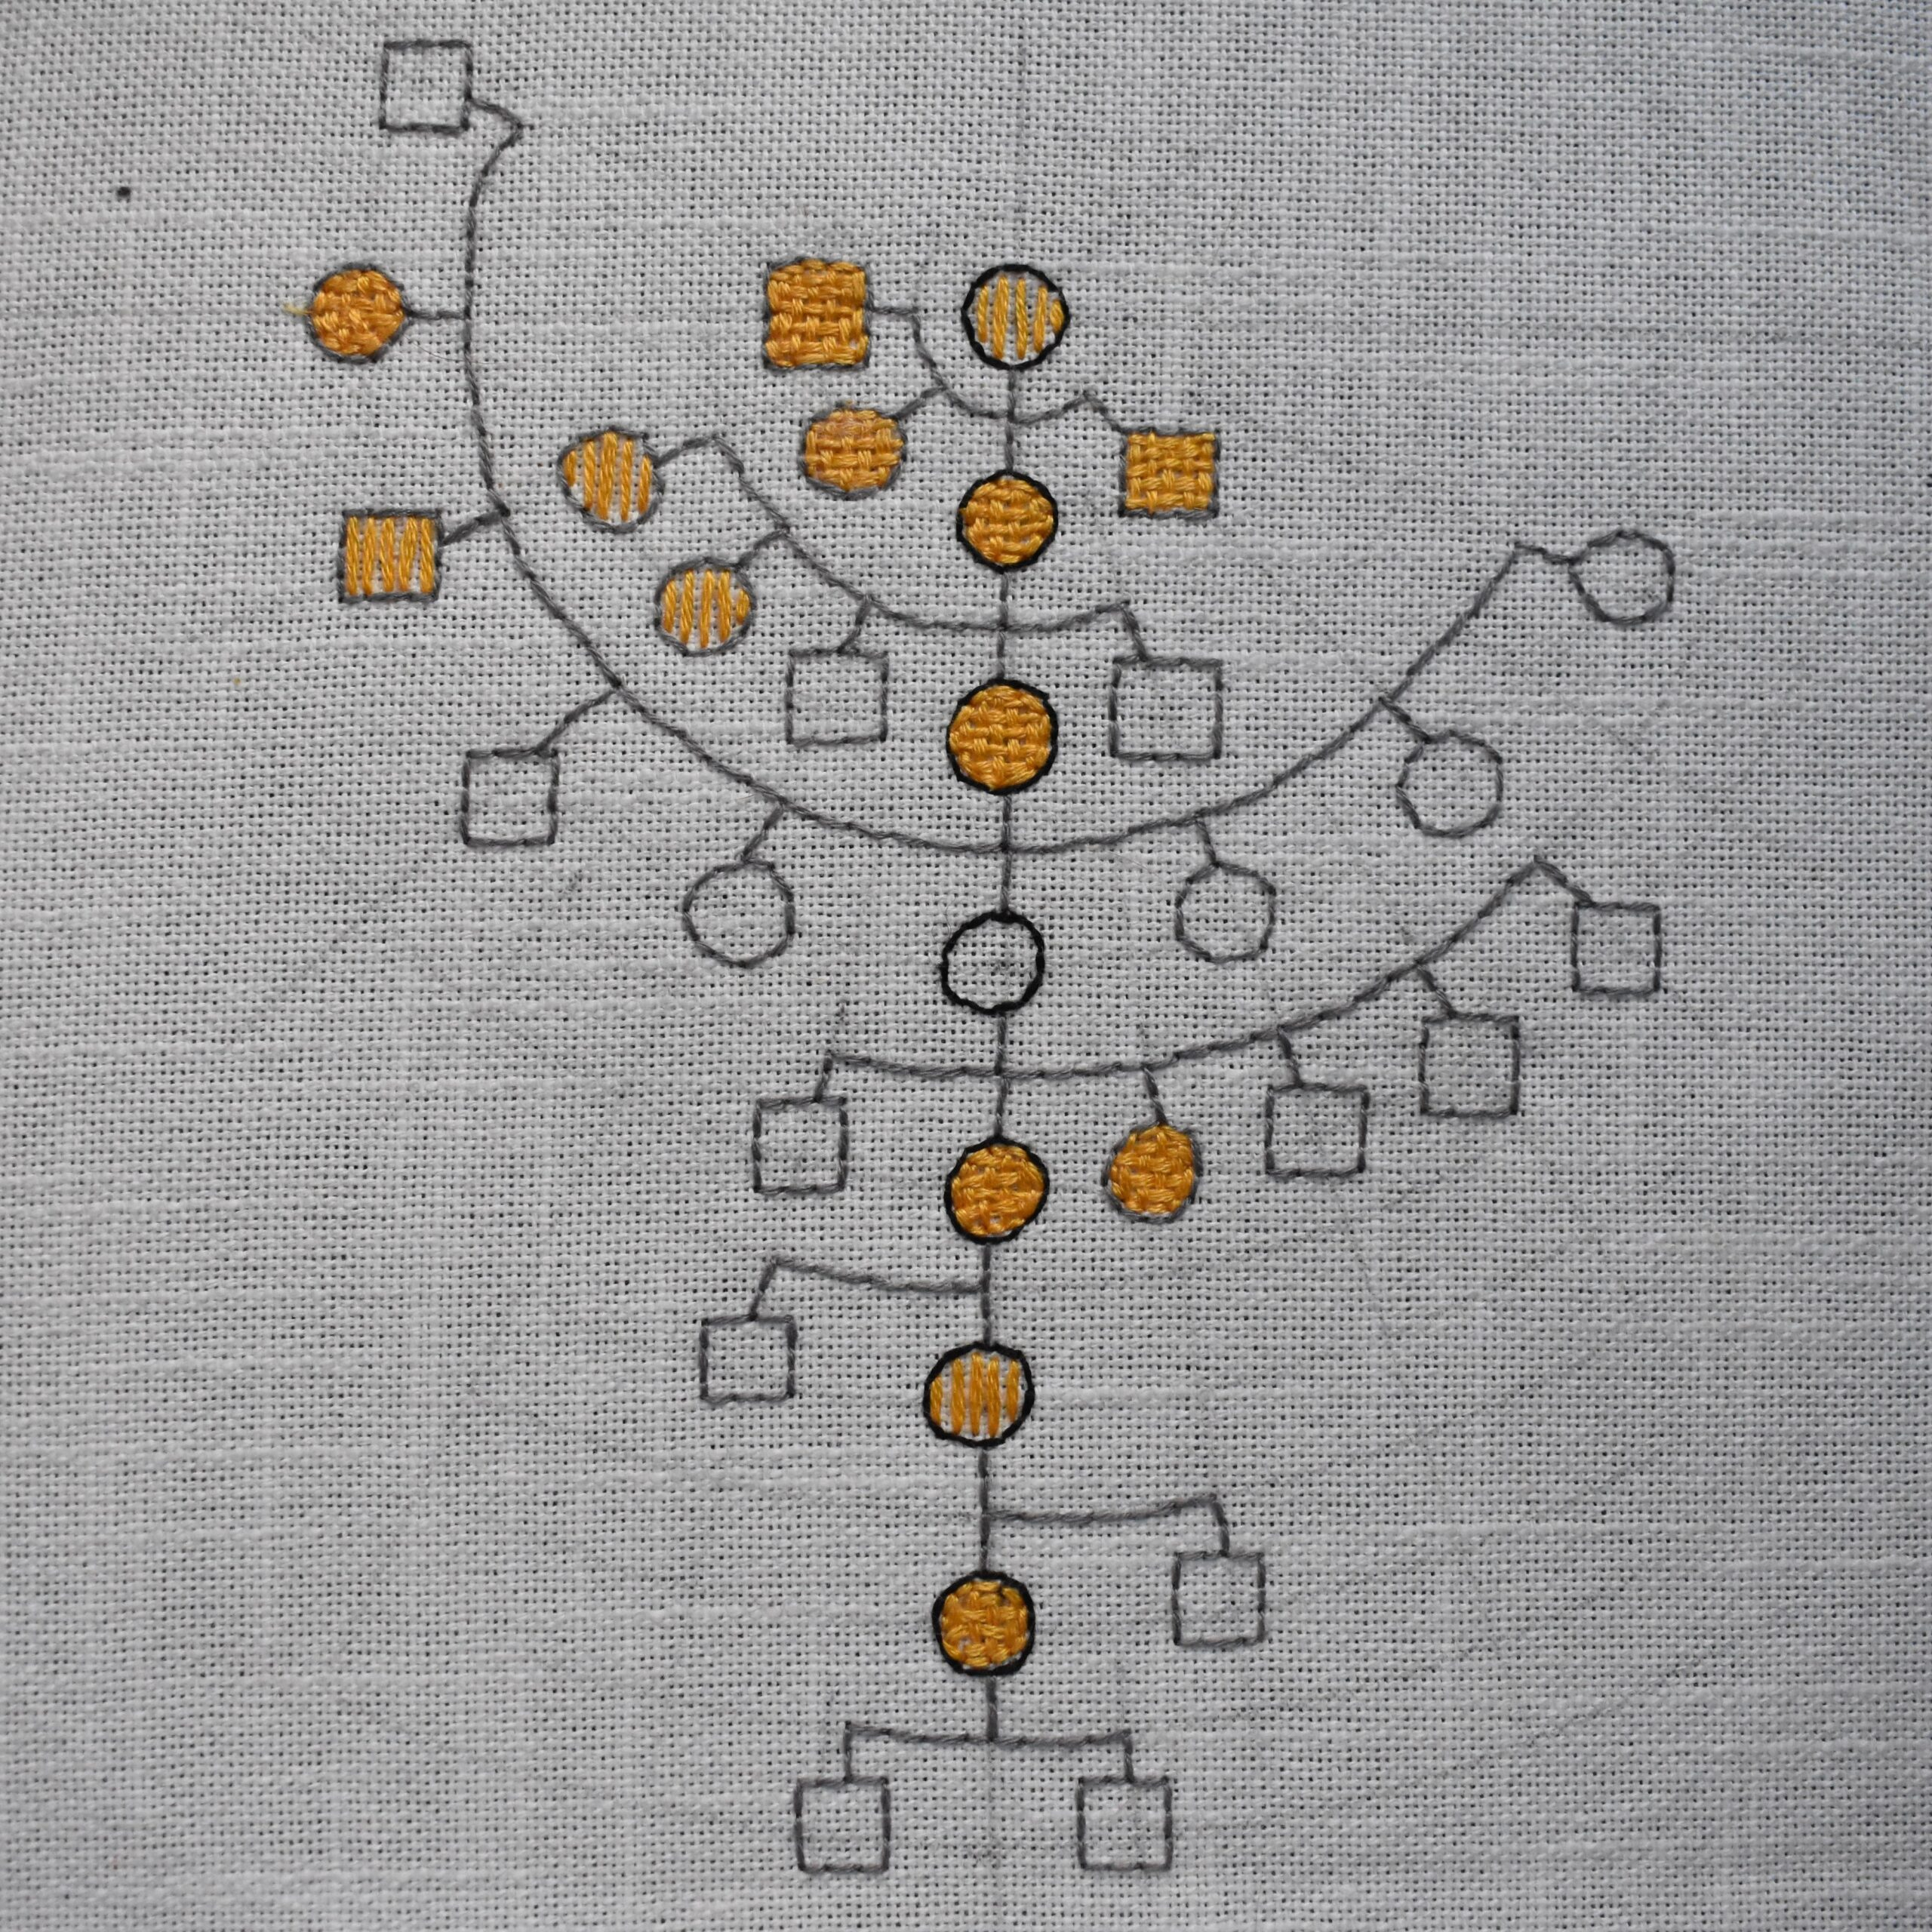 Embroidery showing family tree with weavers indicated